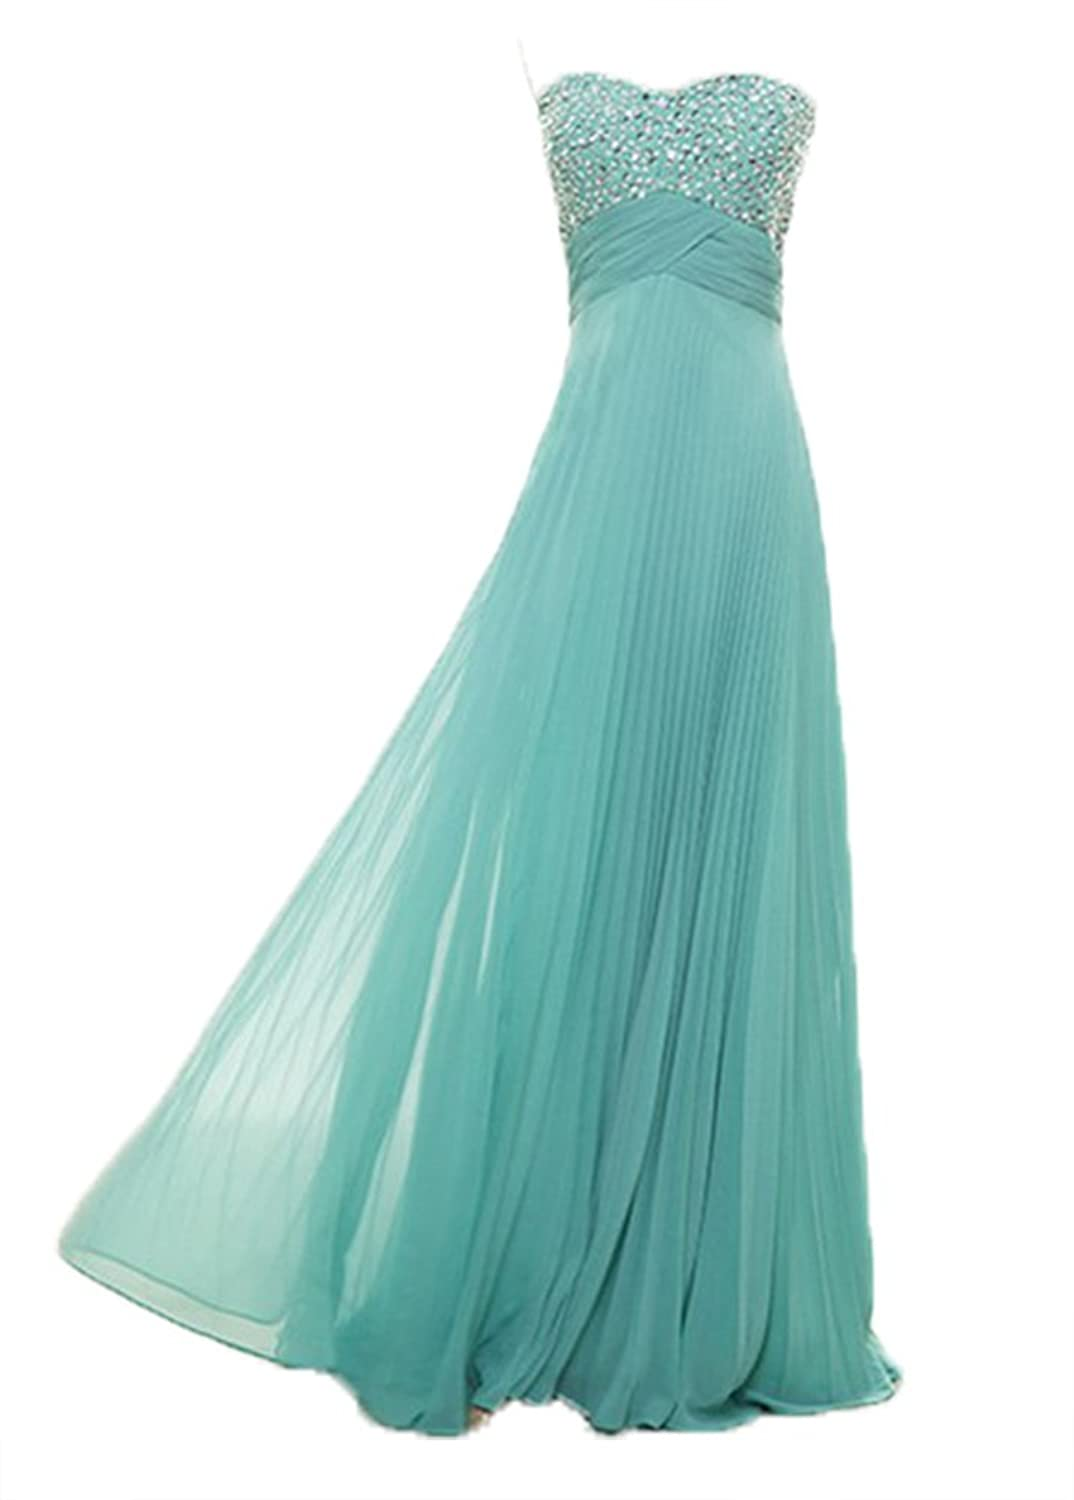 Fanciest Women's Beaded Long Bridesmaid Dresses Wedding Party Gowns Turquoise